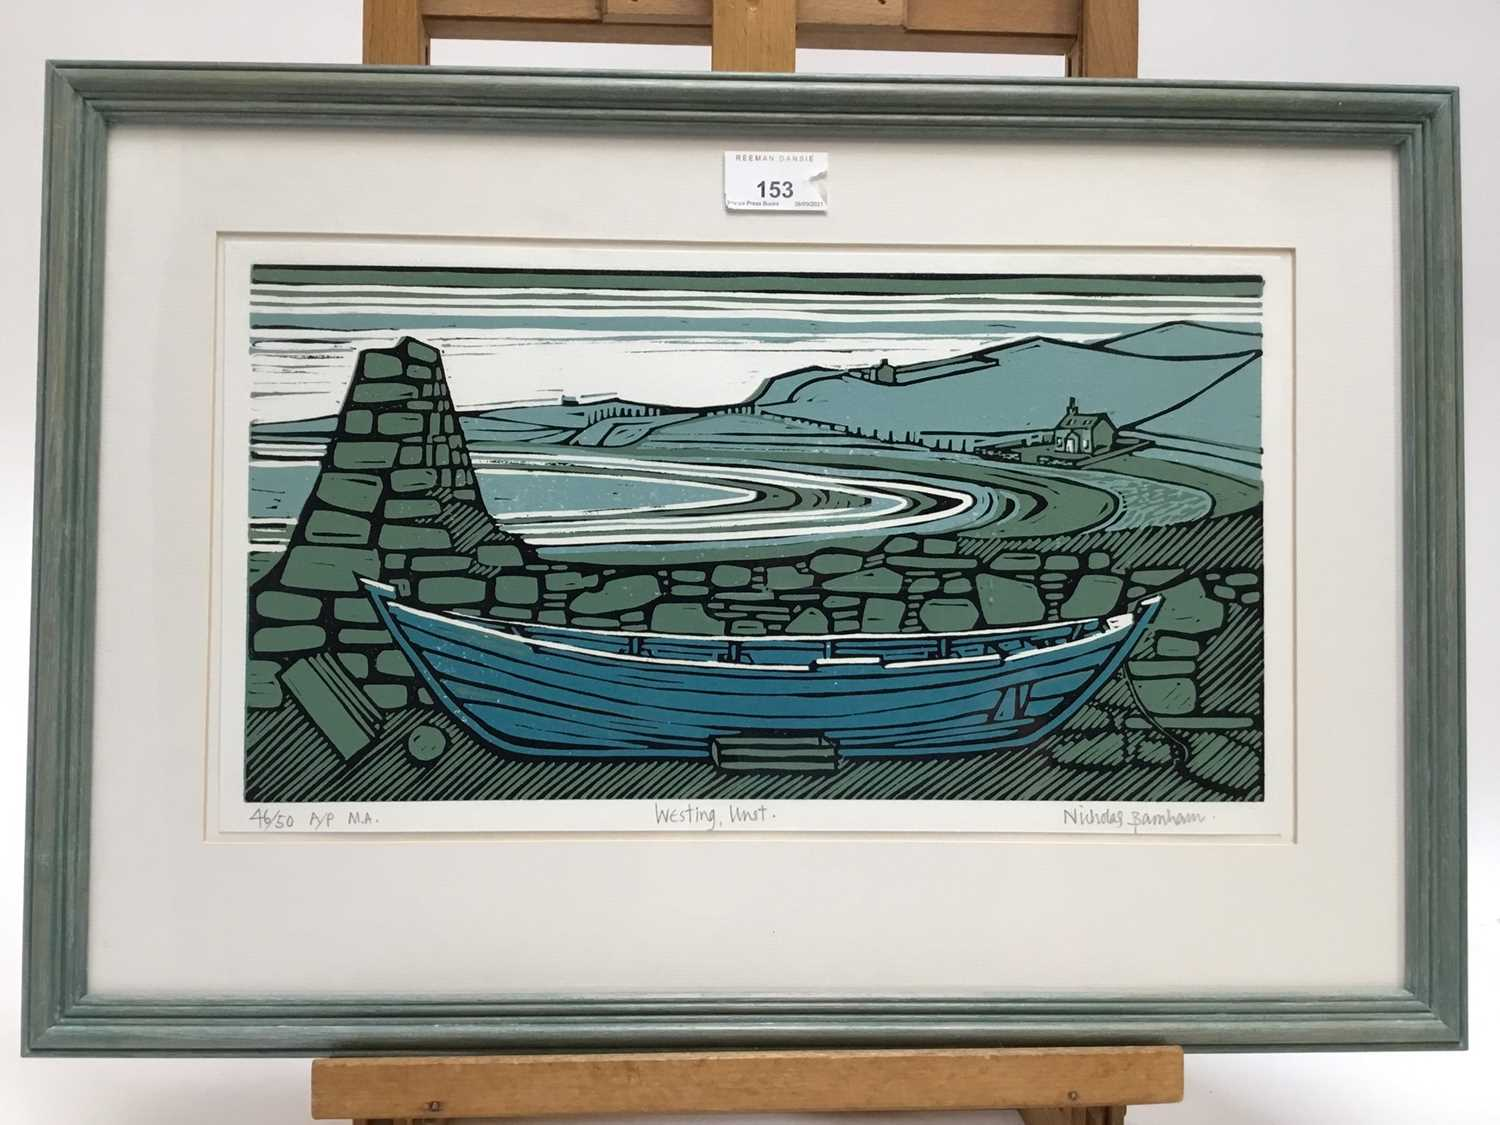 Nicholas Barnham (b. 1939) linocut in colours, Westing Unst, signed and numbered 46/50 A/P, 20 x 36c - Image 5 of 7